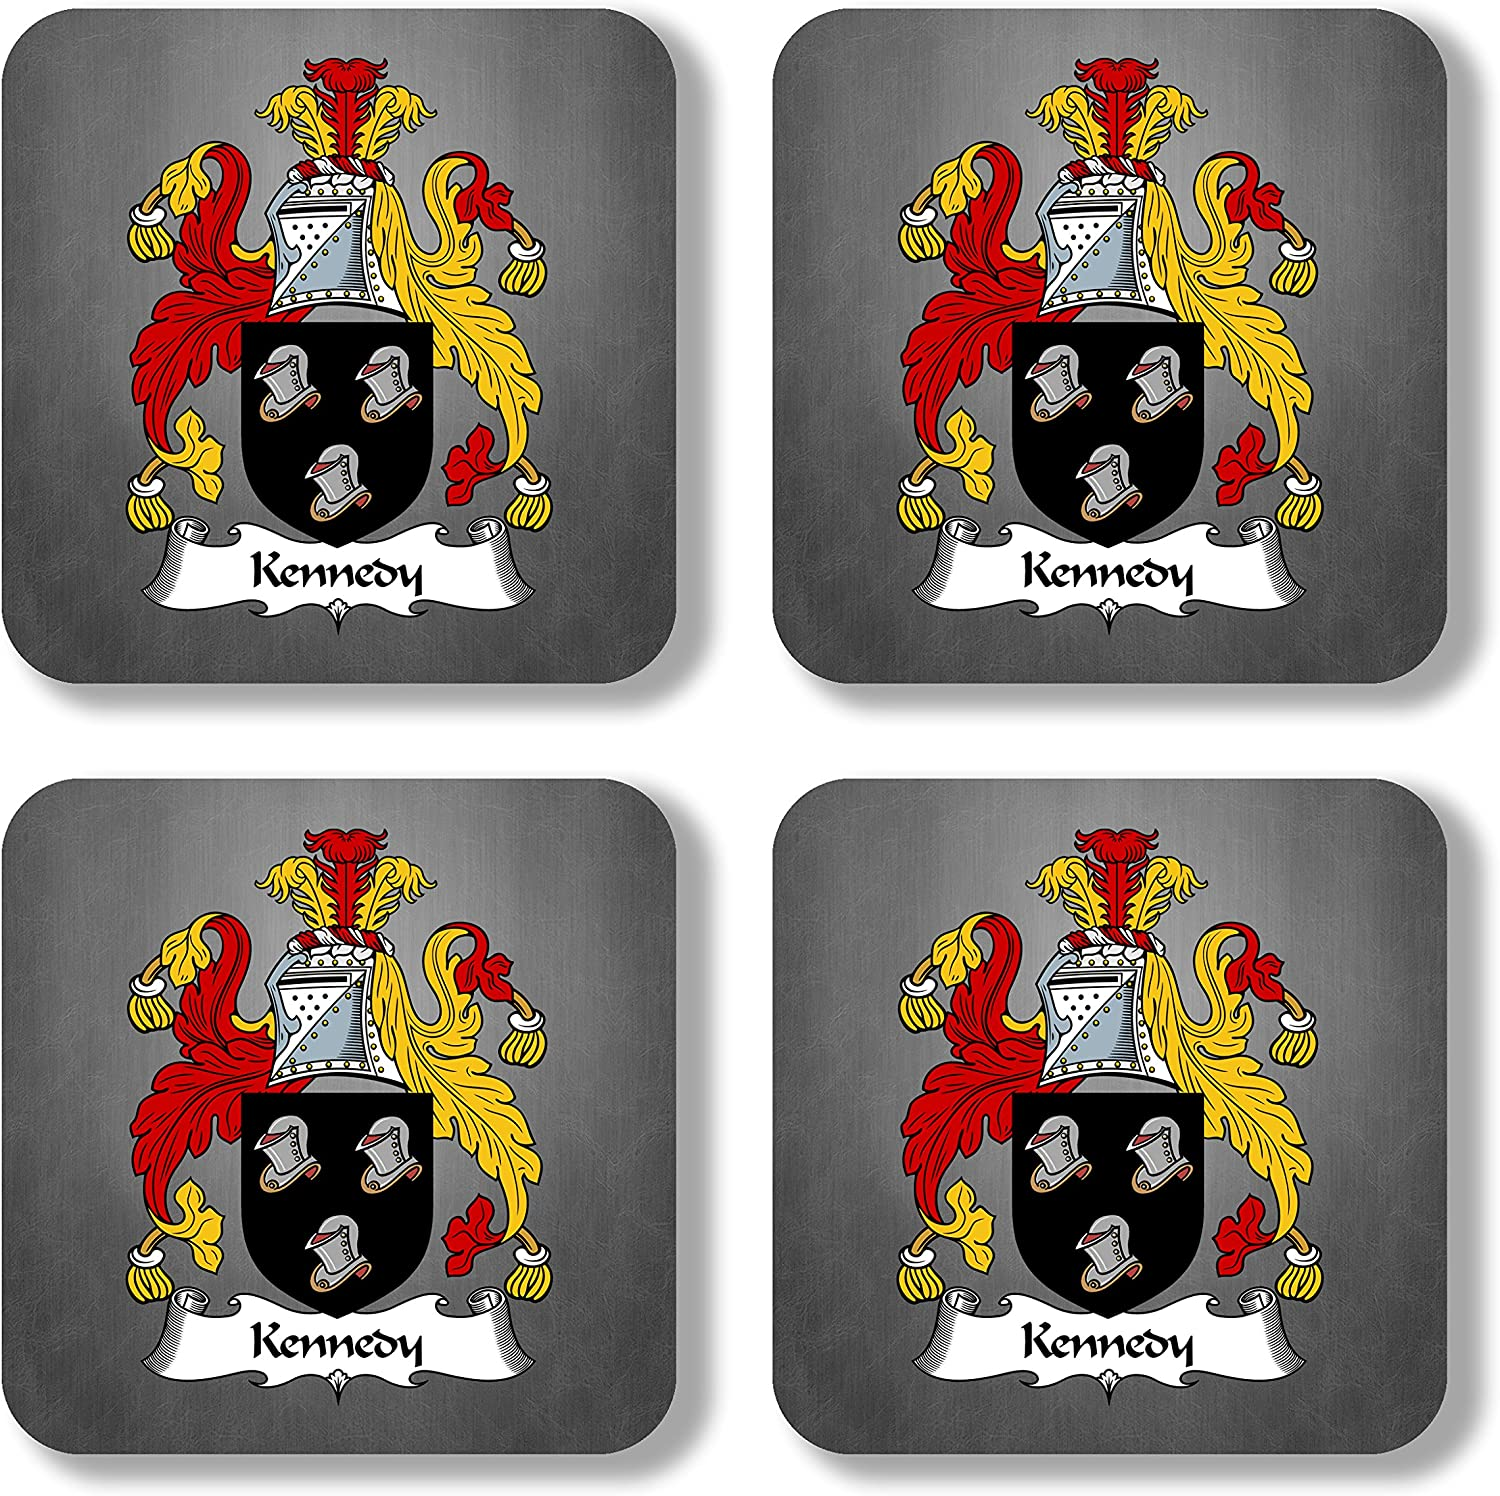 Kennedy Coat of Arms/Family Crest Coaster Set, by Carpe Diem Designs – Made in the U.S.A.